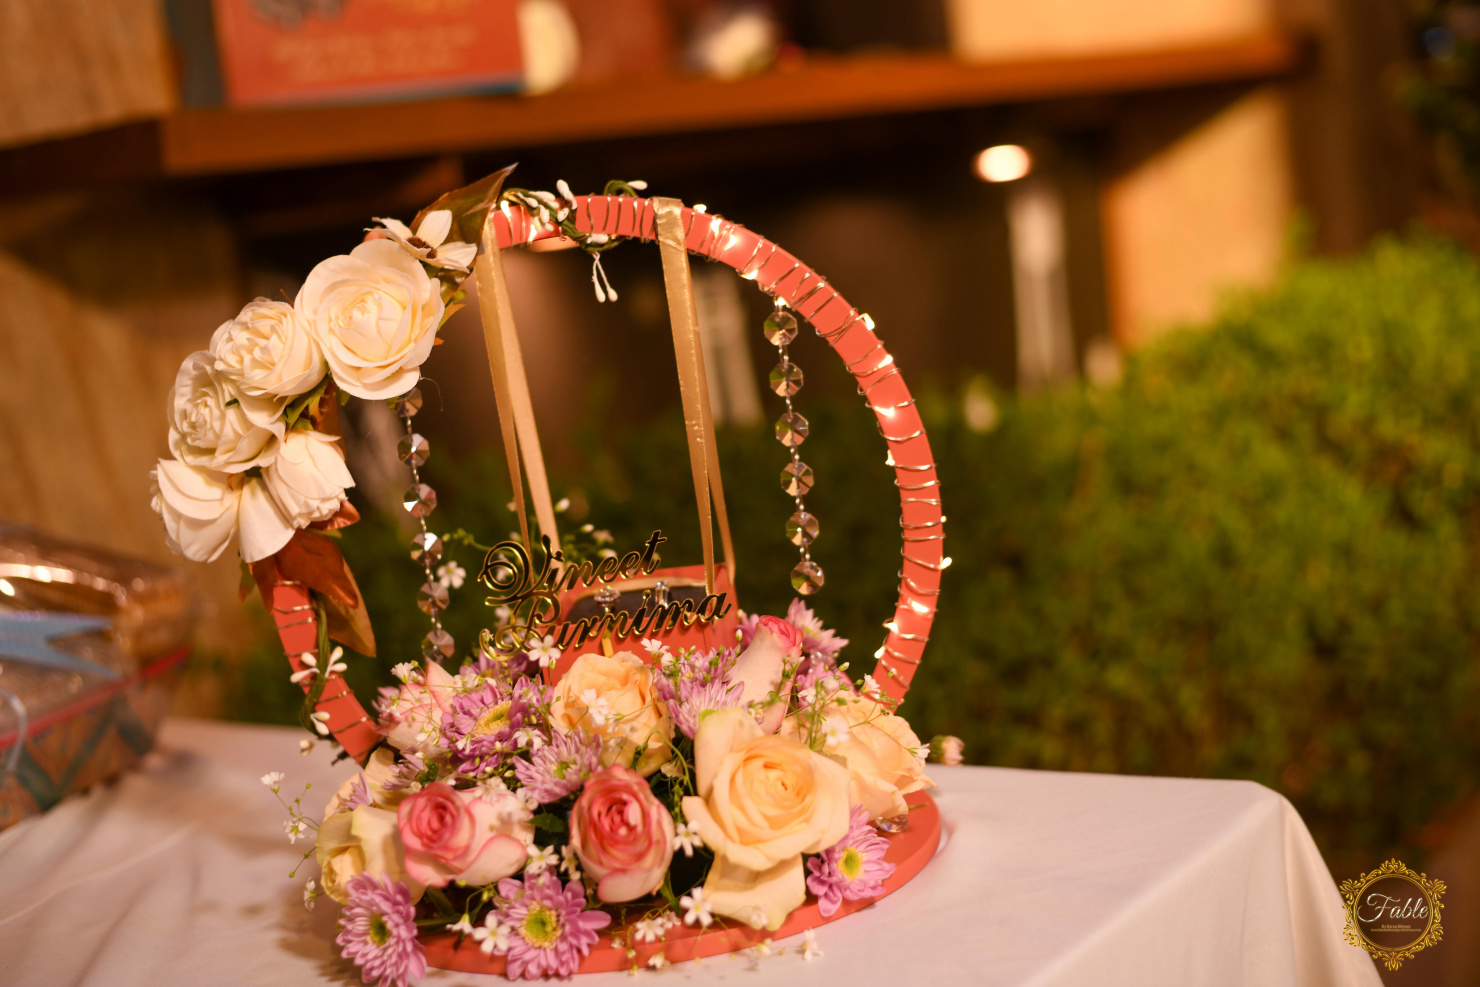 table decor with couple's names